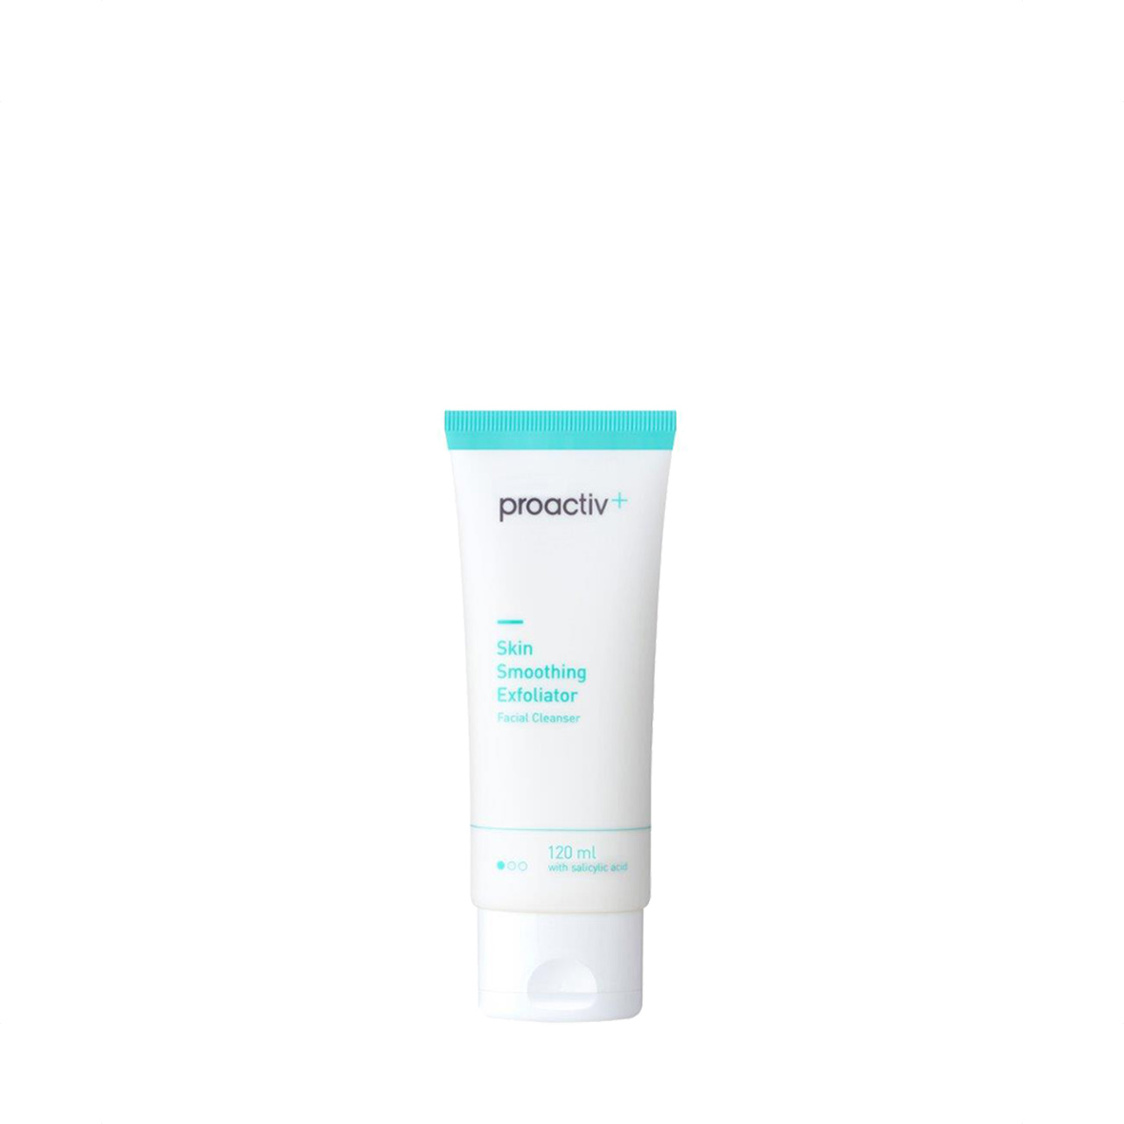 Proactiv Skin Smoothing Cleanser